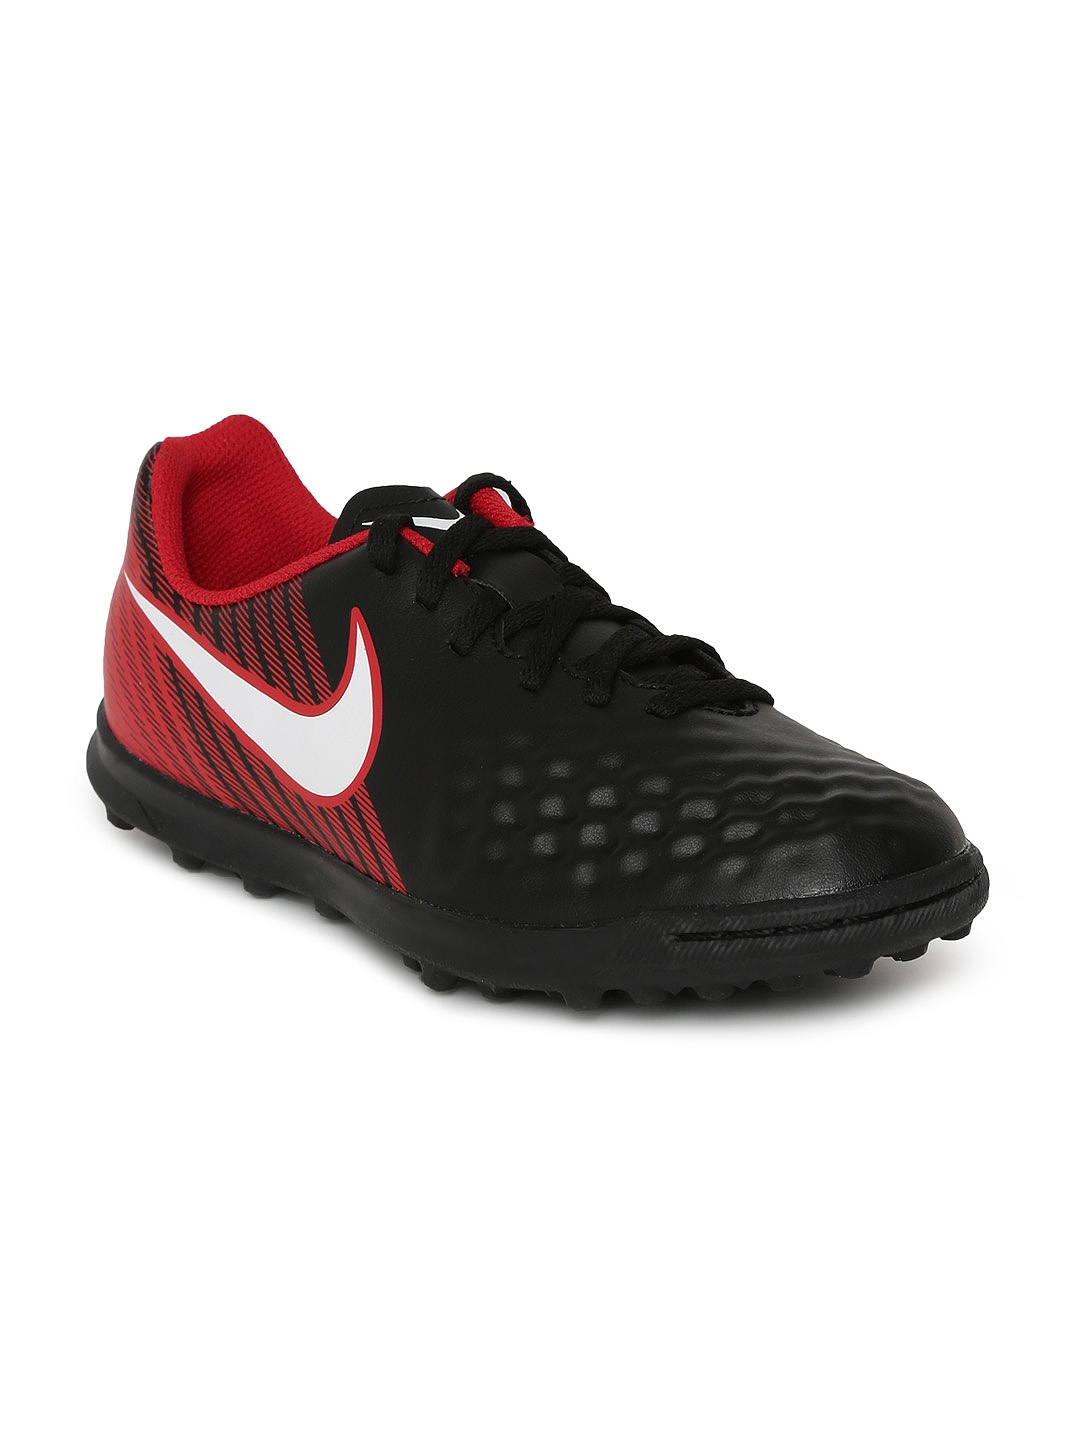 Buy Nike Kids Jr. MagistaX Ola II (TF) Turf Football Shoes - Sports ... fbfd8202bc80c